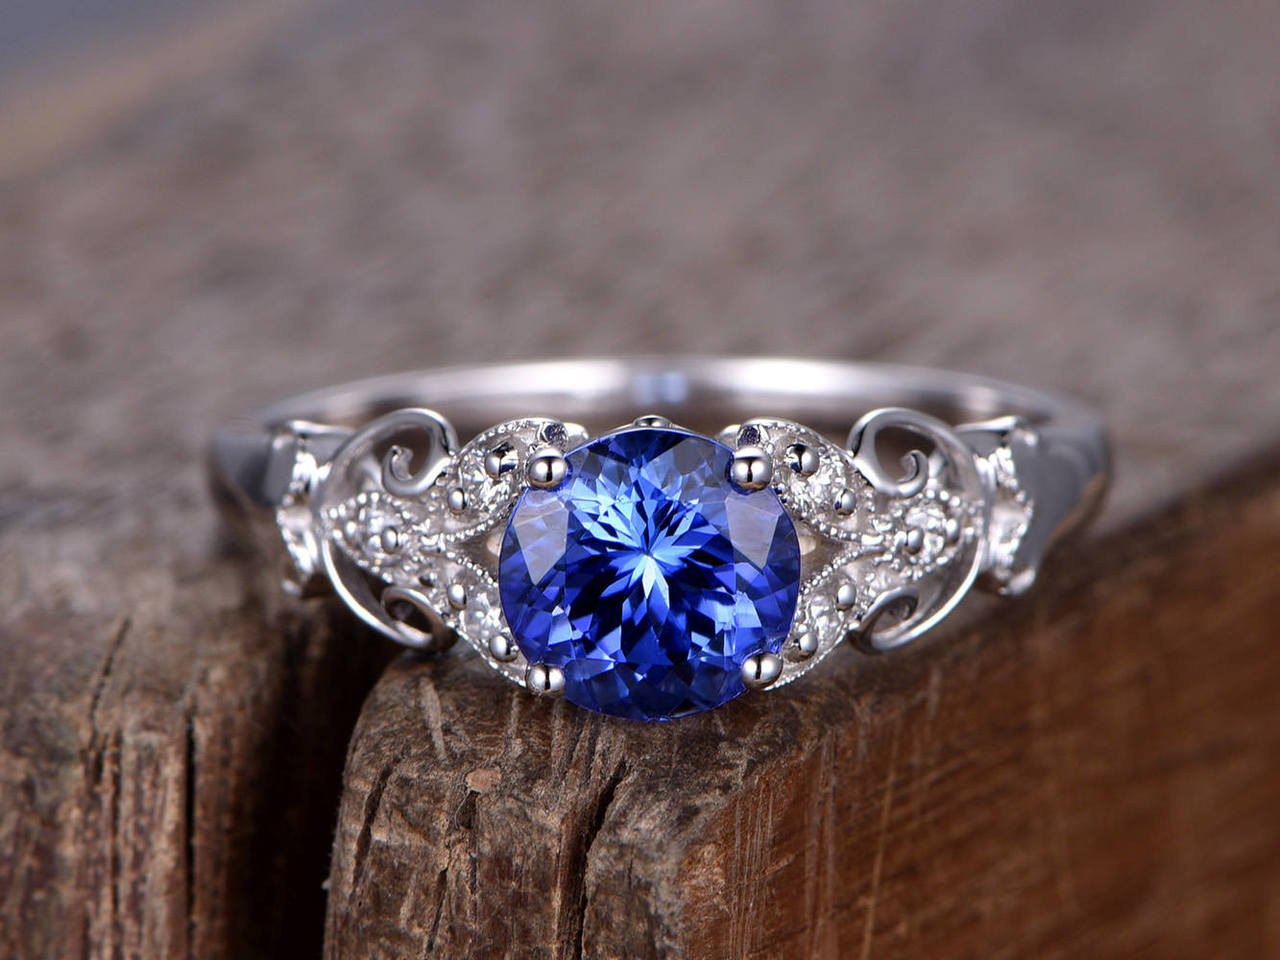 sapphire ring art deco engagement ring 7mm round created. Black Bedroom Furniture Sets. Home Design Ideas